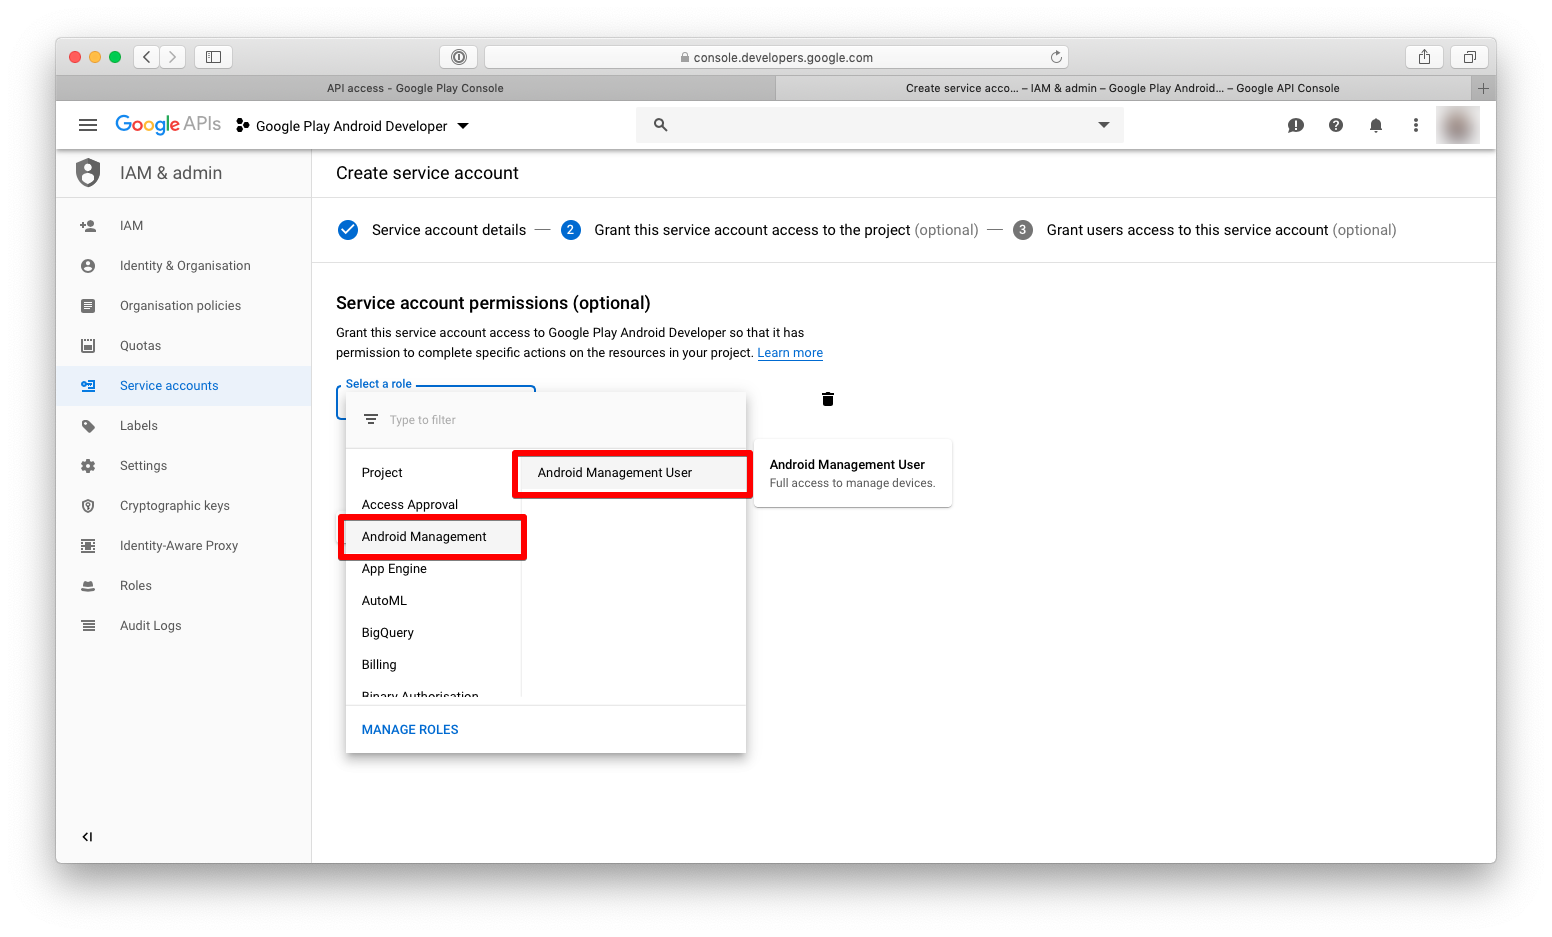 SDK Security settings on the Dashboard